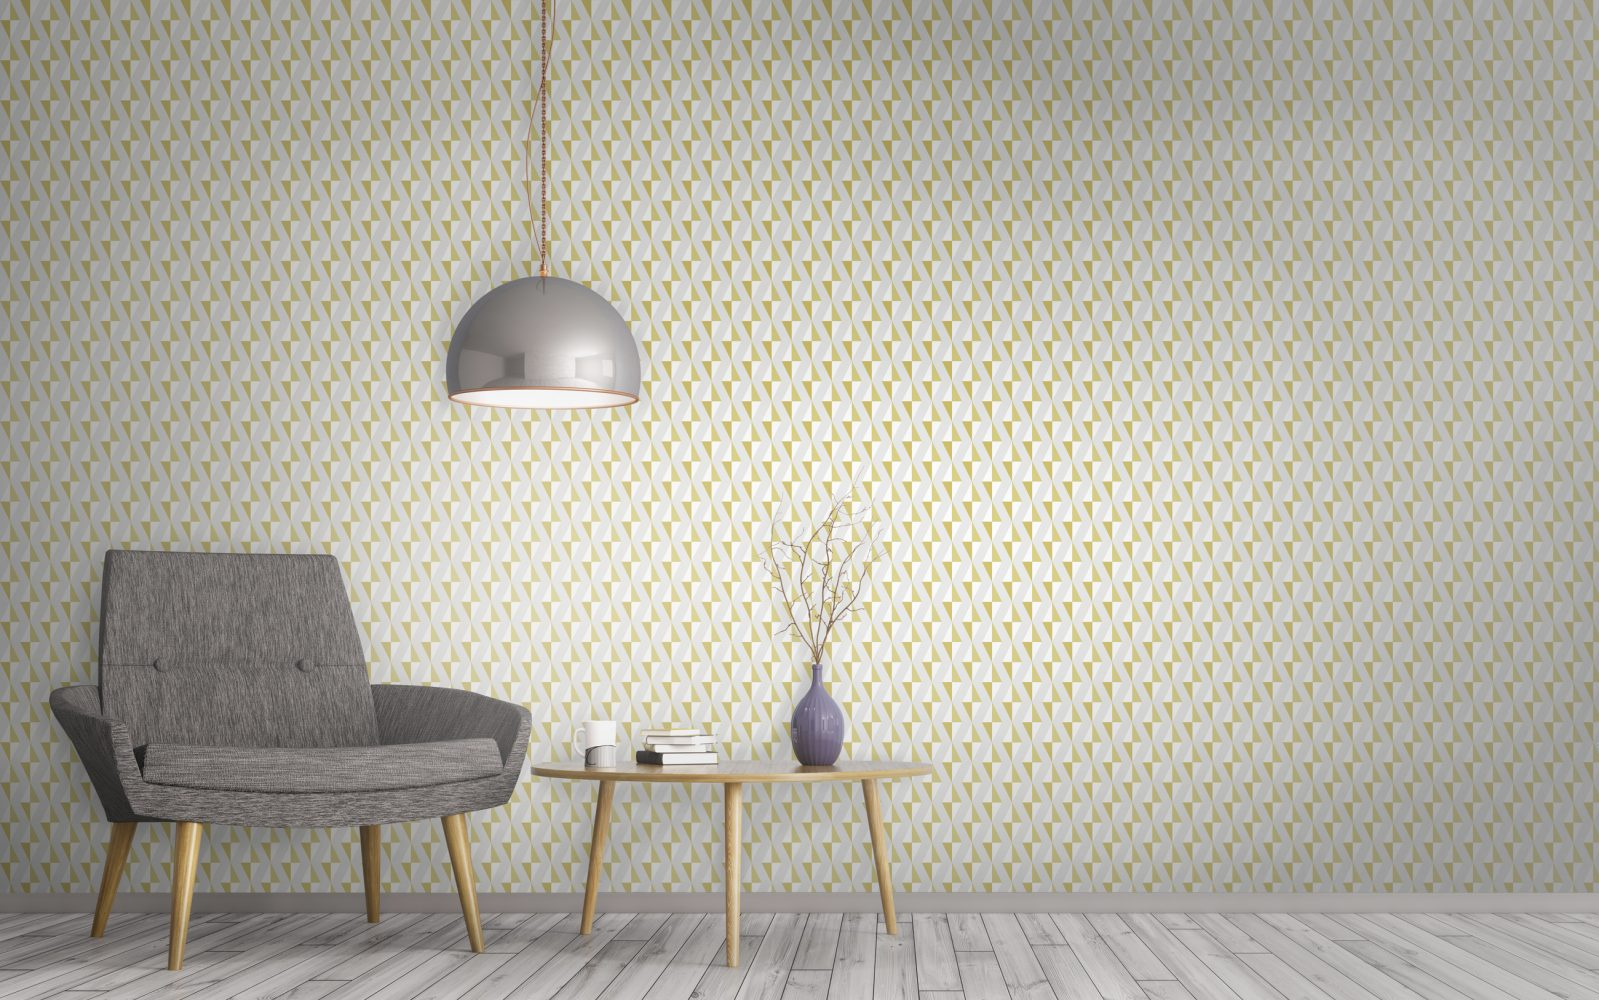 Luxurious Diamond Print Geometric Mustard Wallpaper With Floating Diamond  Print. Surface House Luxury Wallpaper And